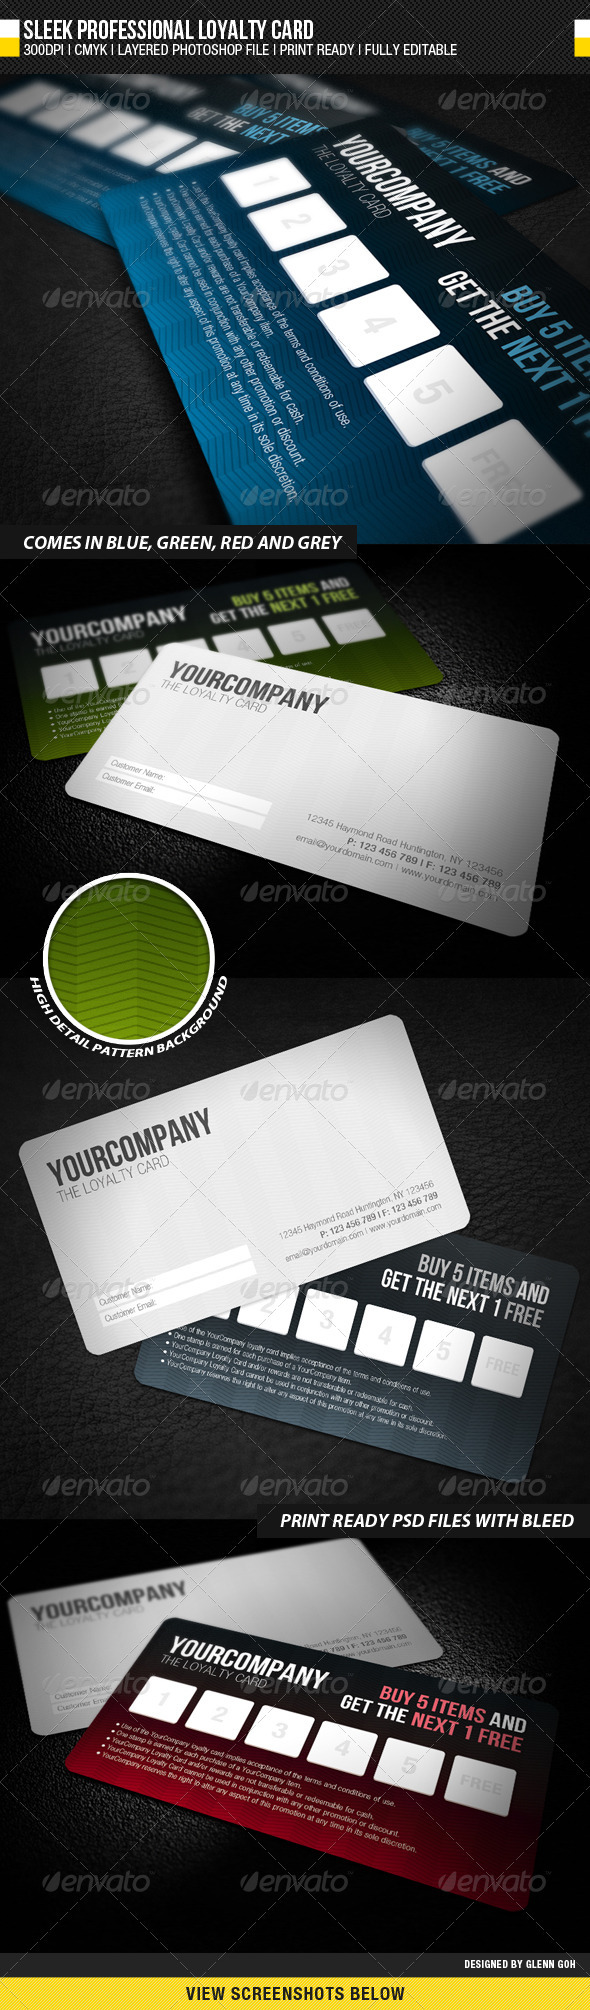 Sleek Professional Loyalty Card - Loyalty Cards Cards & Invites